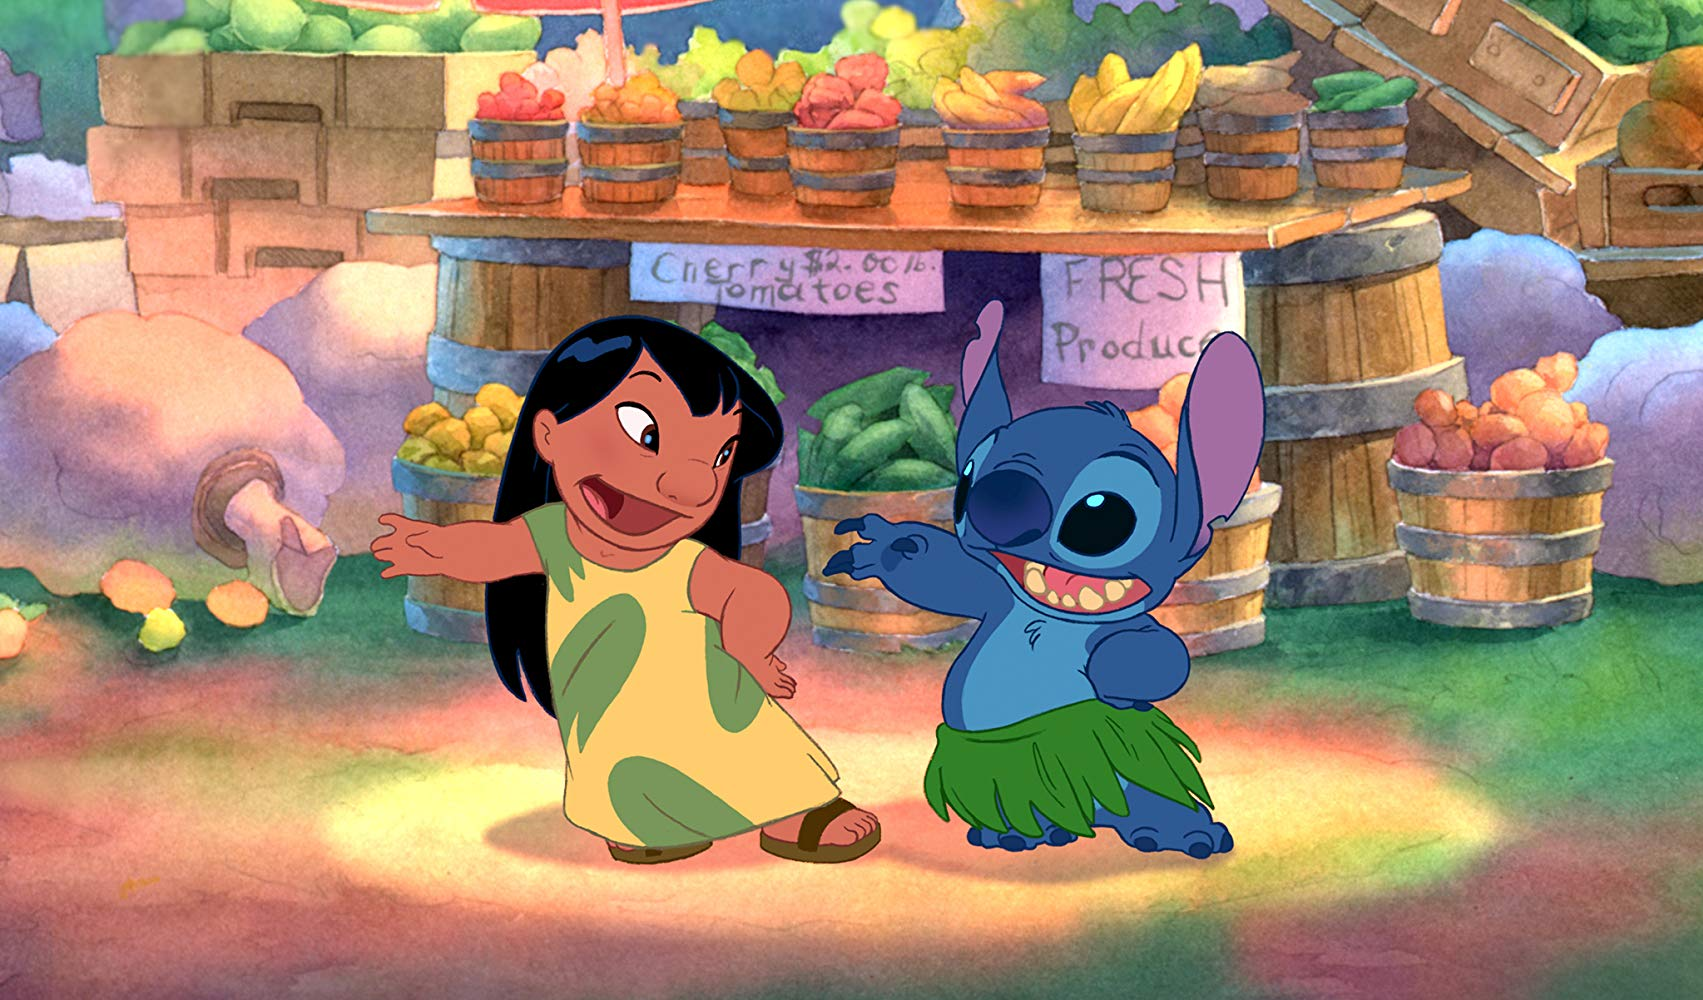 Lilo (voiced by Daveigh Chase) and Stitch aka Experiment 626 (voiced by co-director Chris Sanders) in Lilo & Stitch (2002)